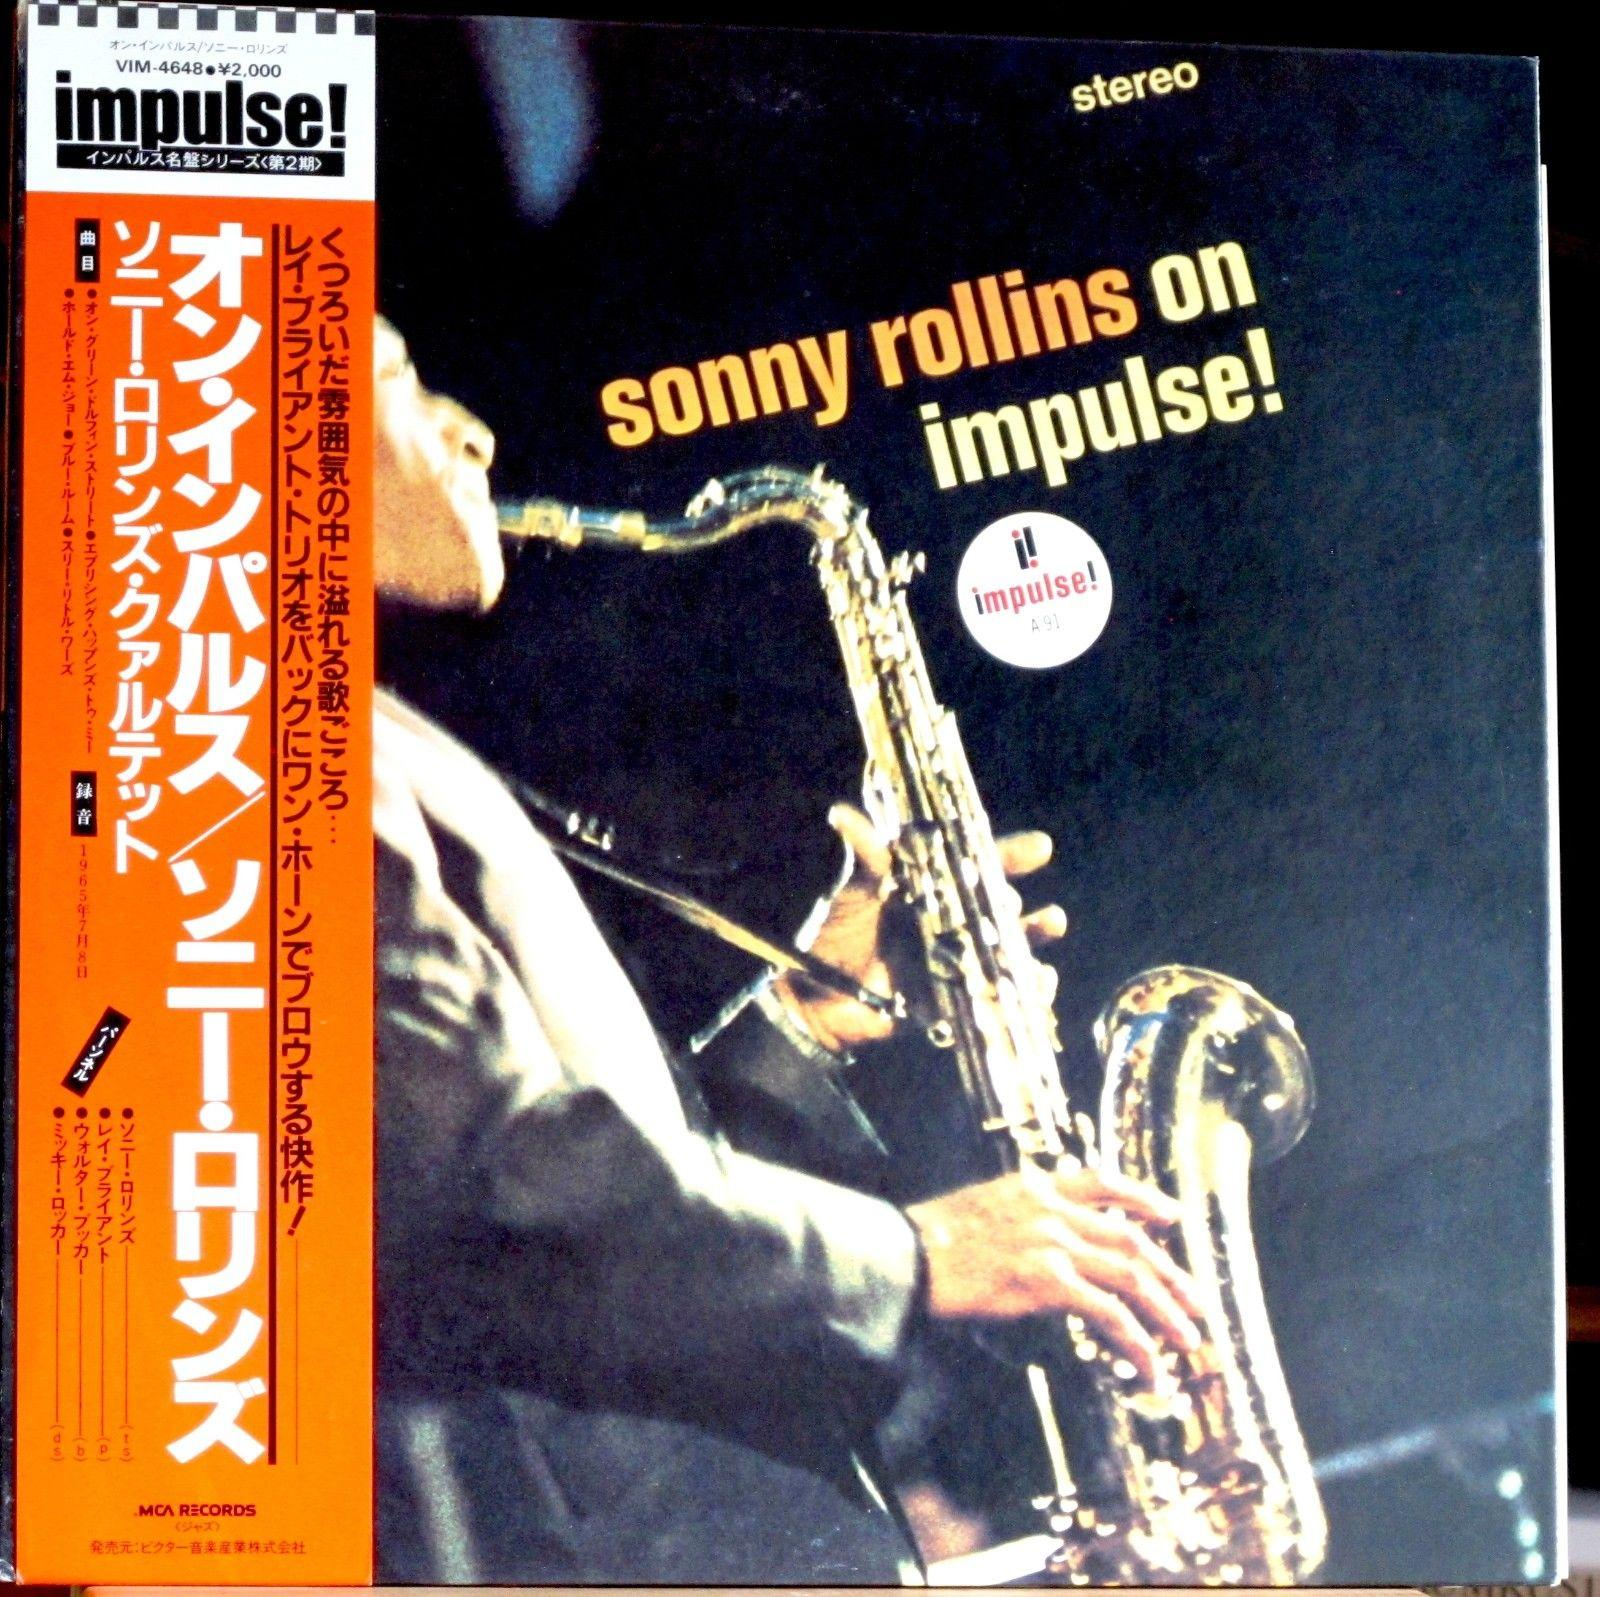 Sonny Rollins on Impulse-Impulse MCA Japan-OBI-nm-